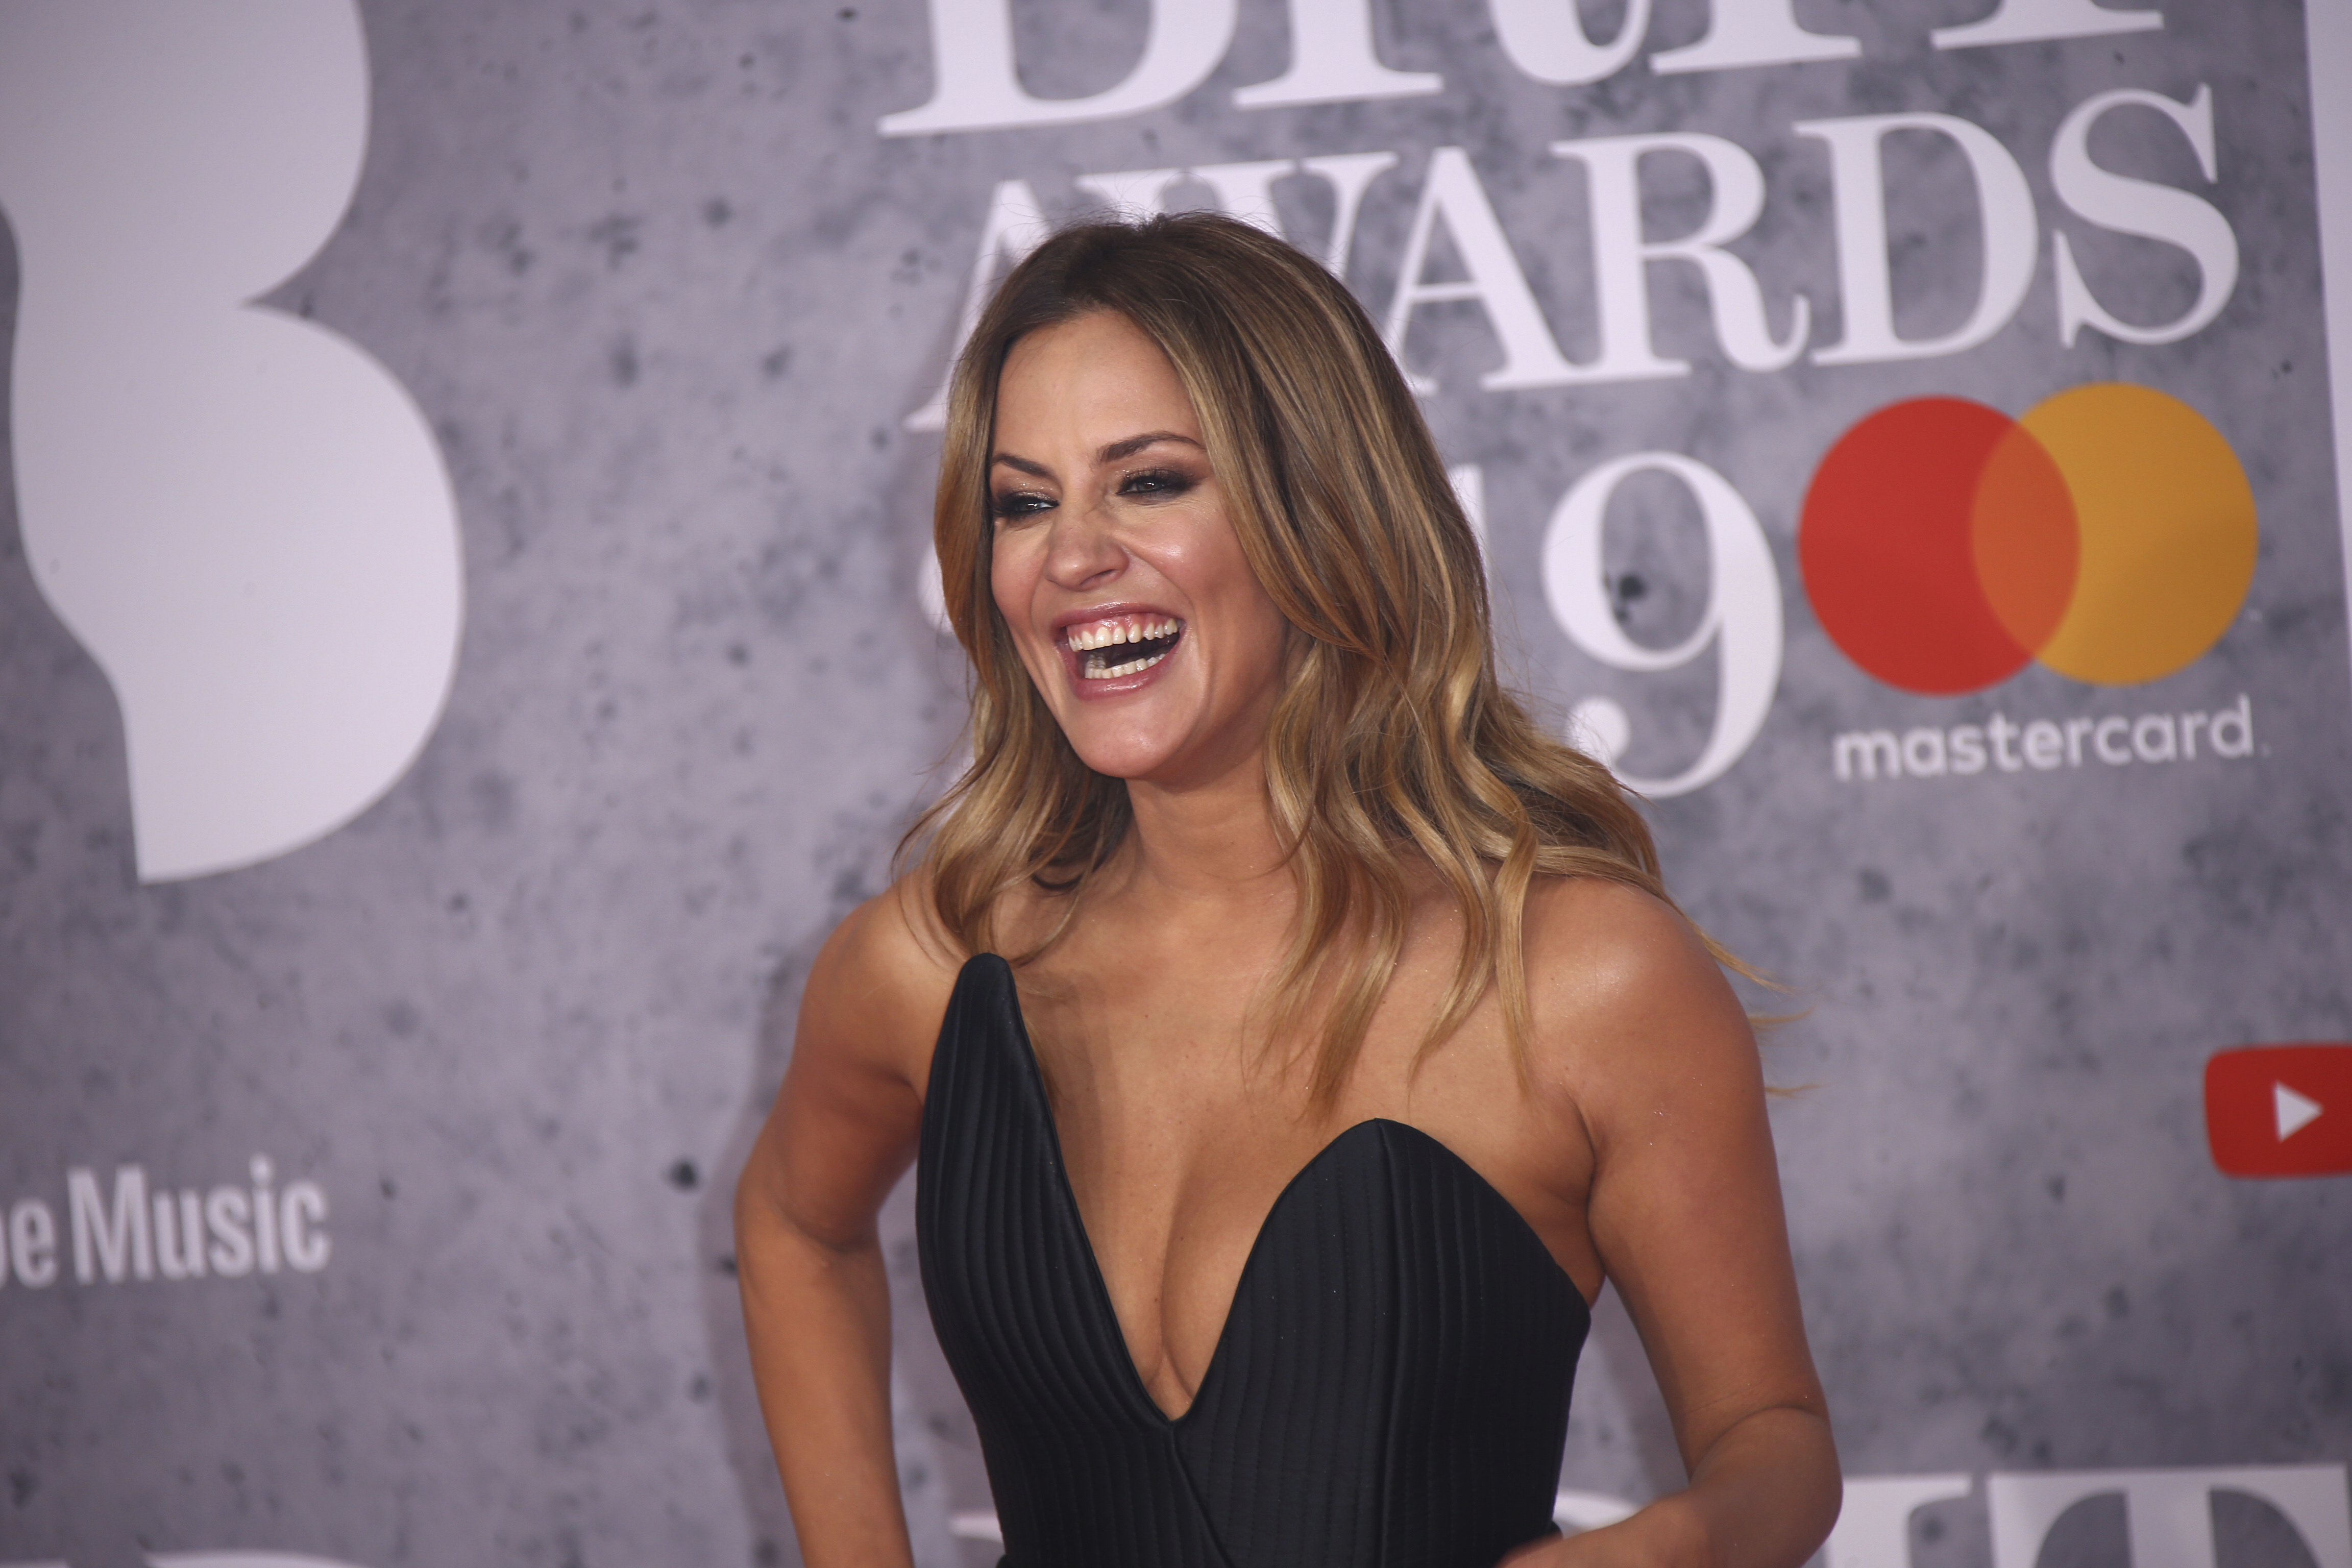 Television presenter Caroline Flack poses for photographers upon arrival at the Brit Awards in London, Wednesday, Feb. 20, 2019. (Photo by Joel C Ryan/Invision/AP)